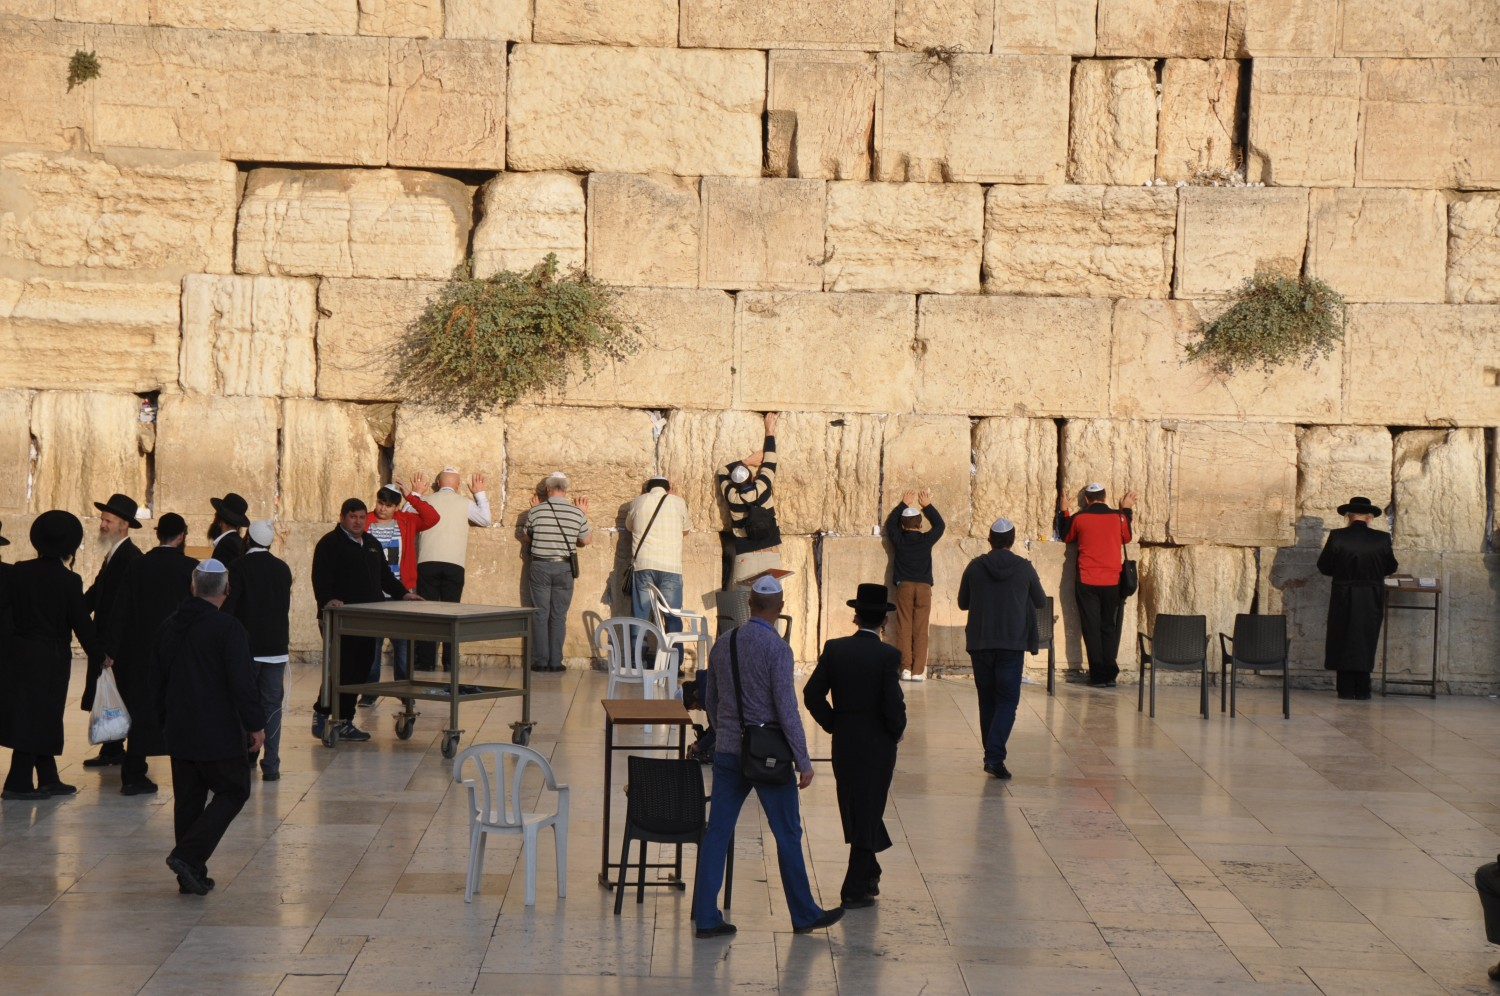 People putting prayers in the cracks of the Wailing Wall